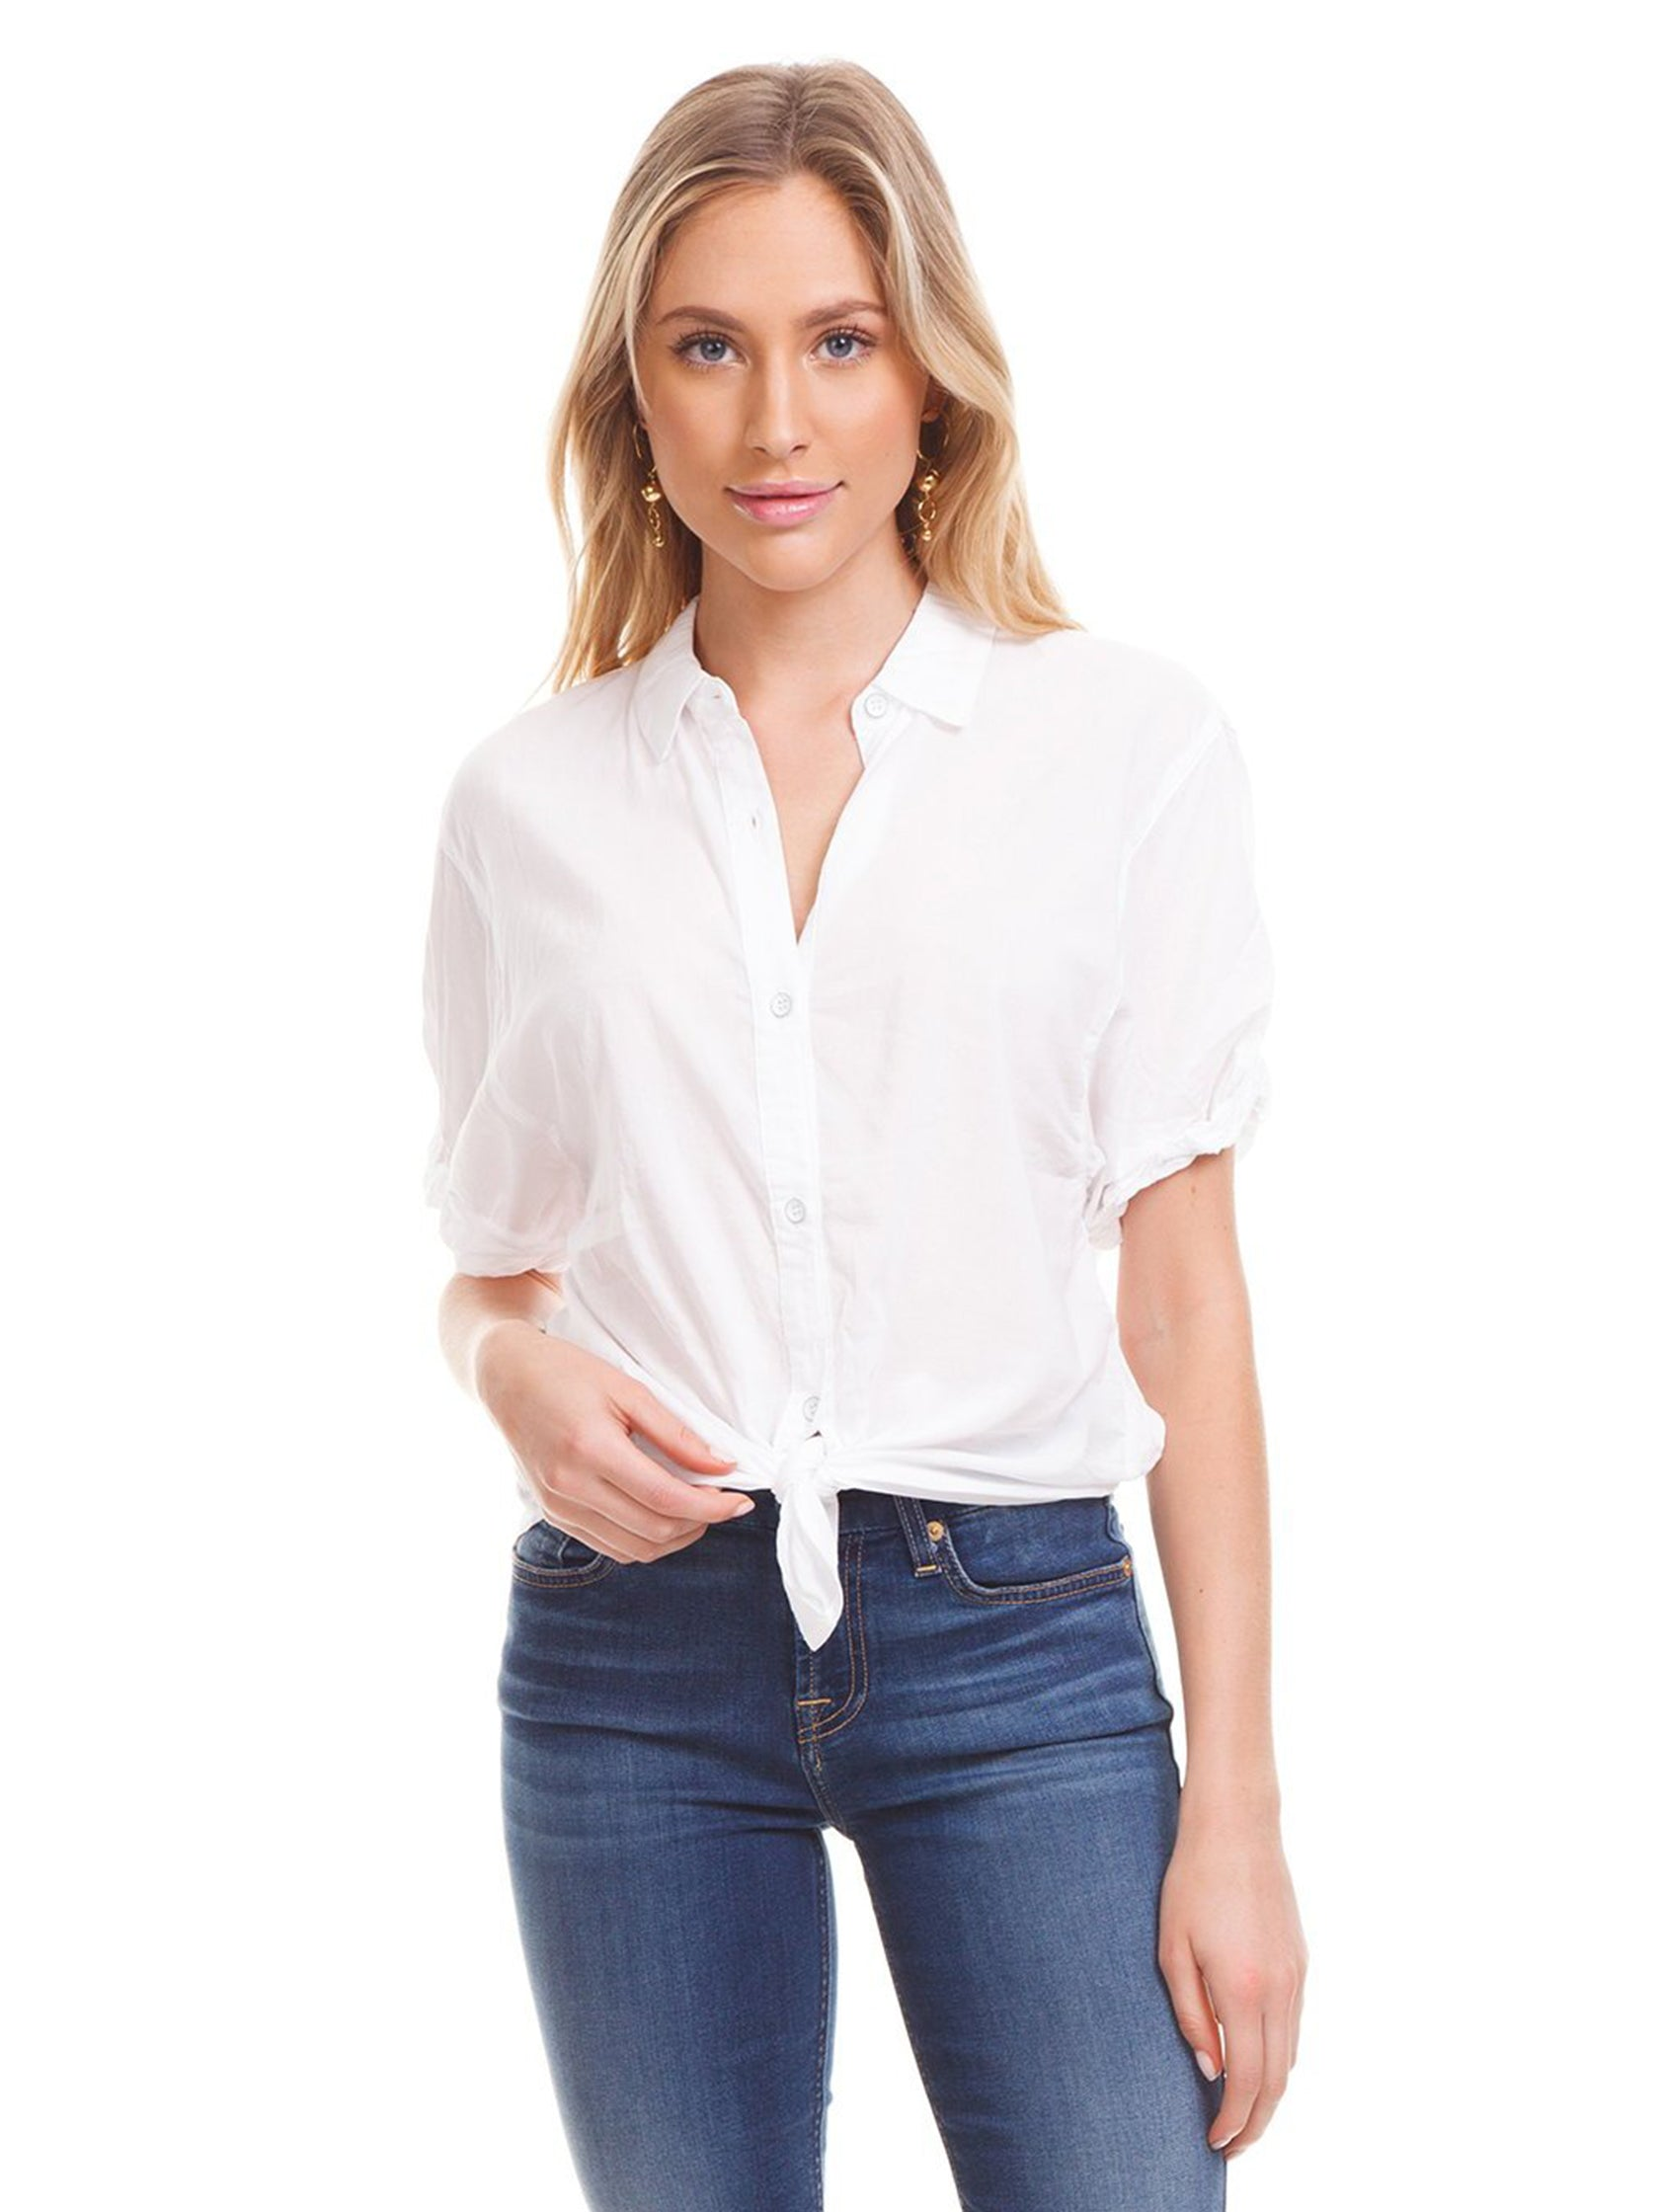 Girl outfit in a top rental from Splendid called Boyfriend Shirt